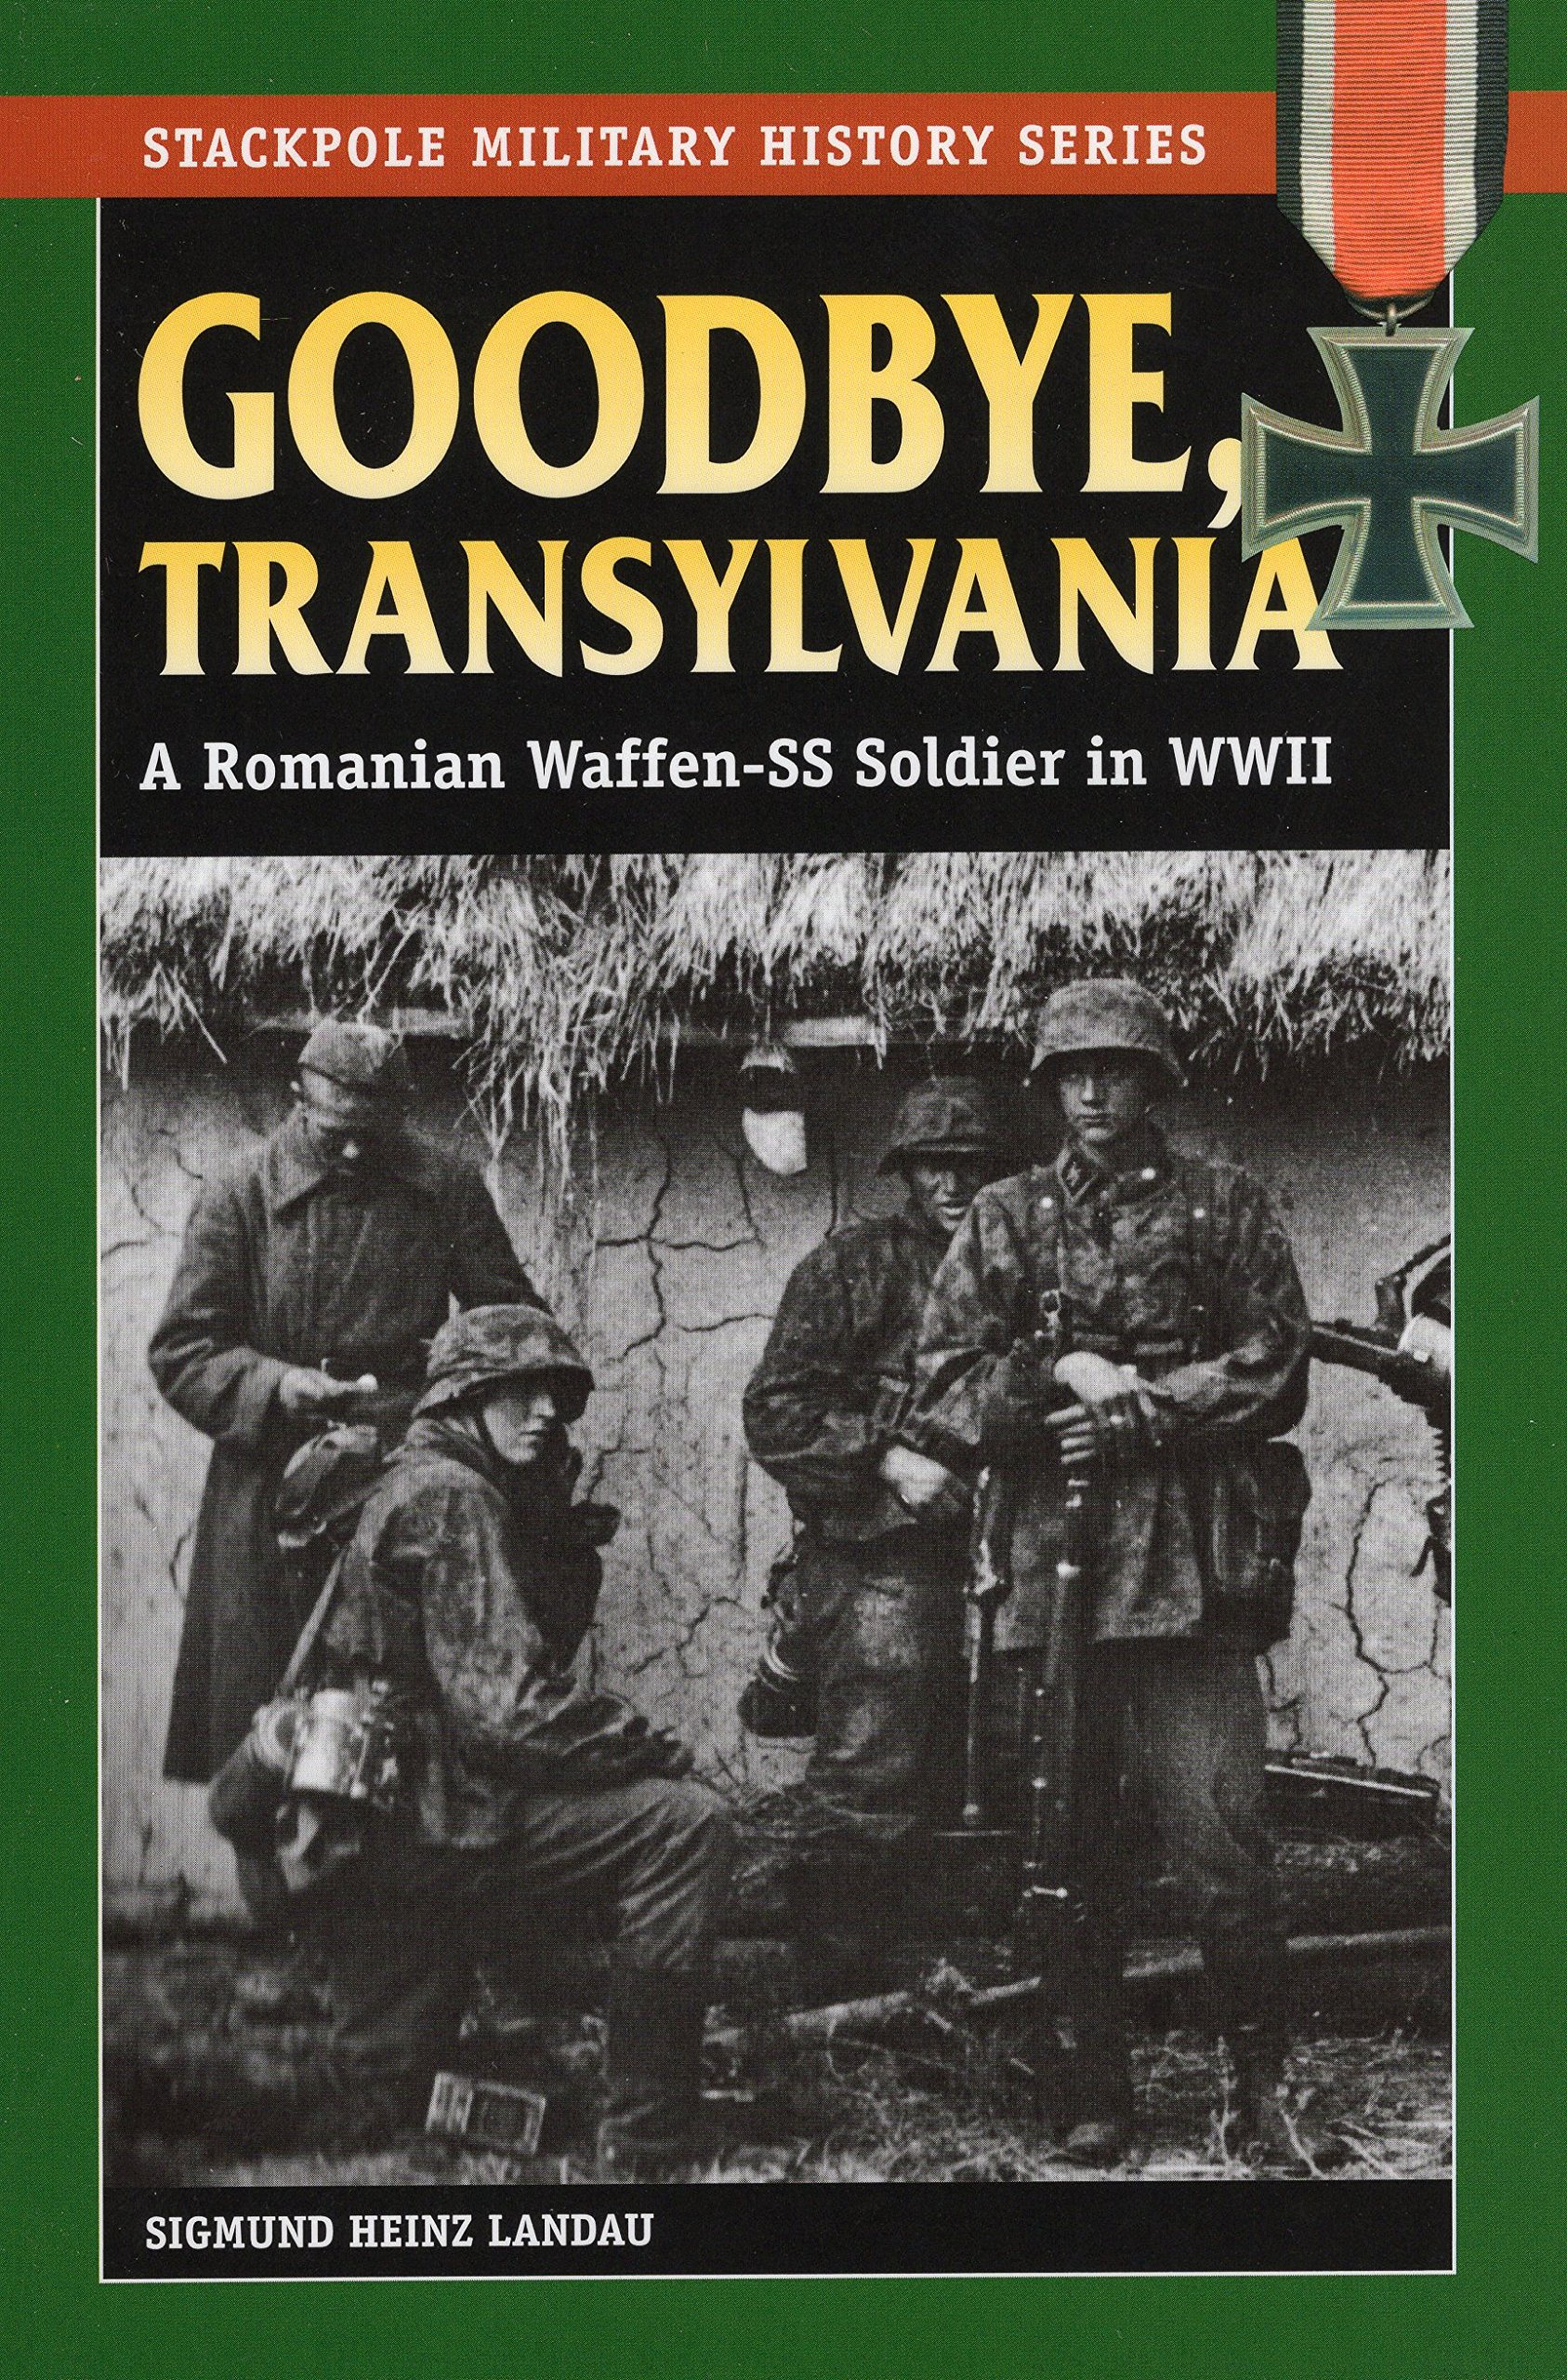 Download Goodbye, Transylvania: A Romanian Waffen-SS Soldier in WWII (Stackpole Military History Series) pdf epub